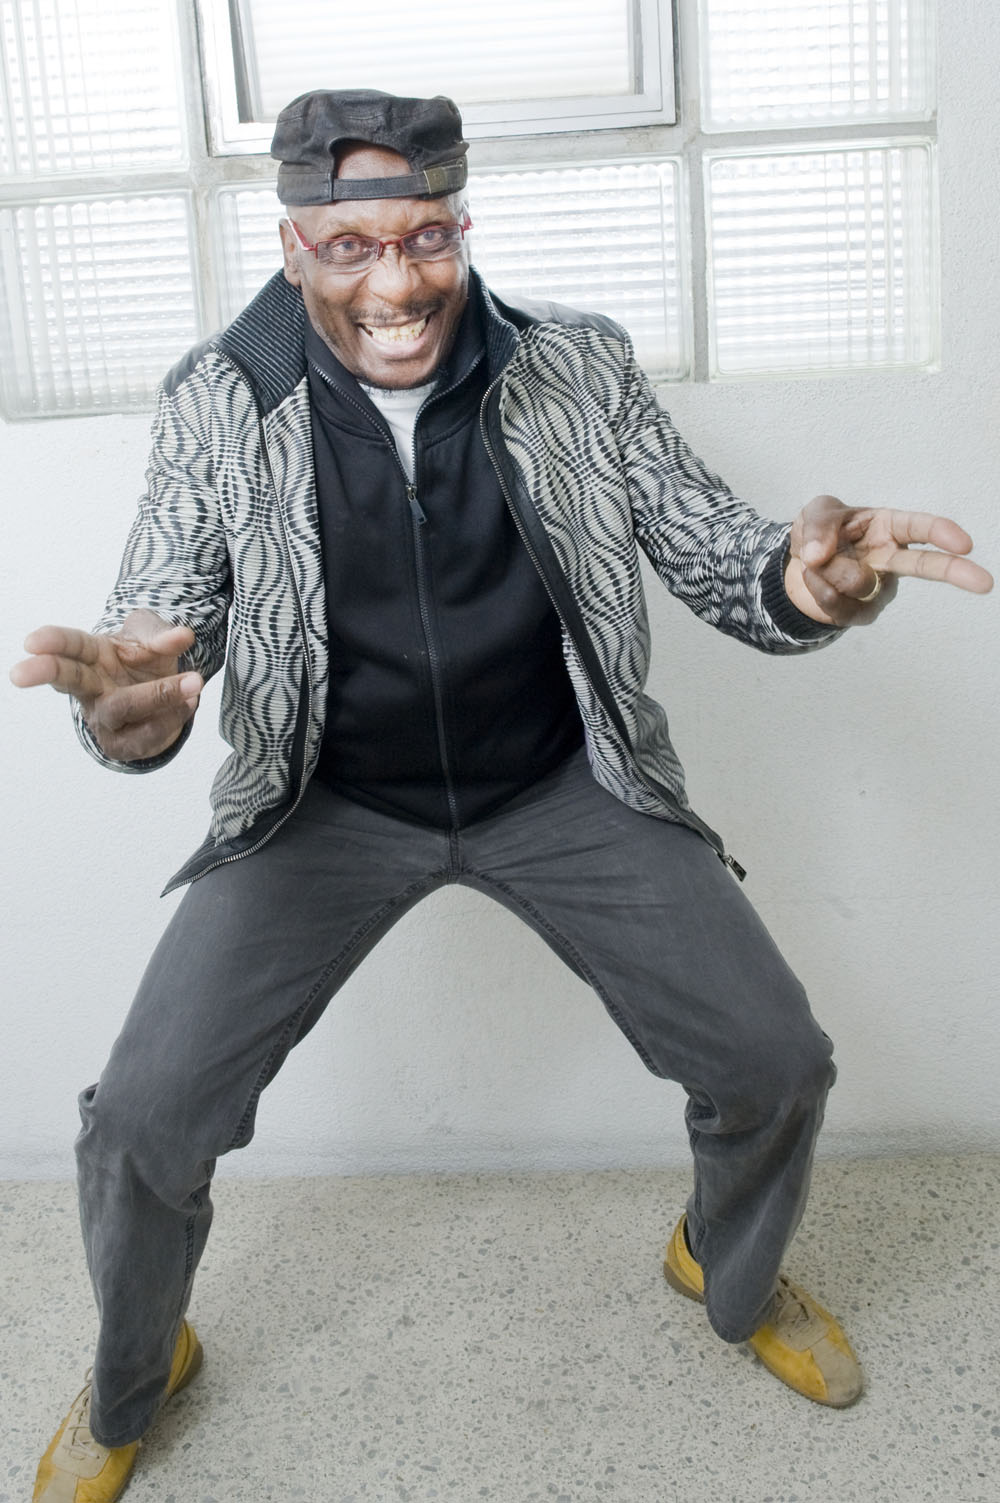 My favorite portrait of Jimmy Cliff